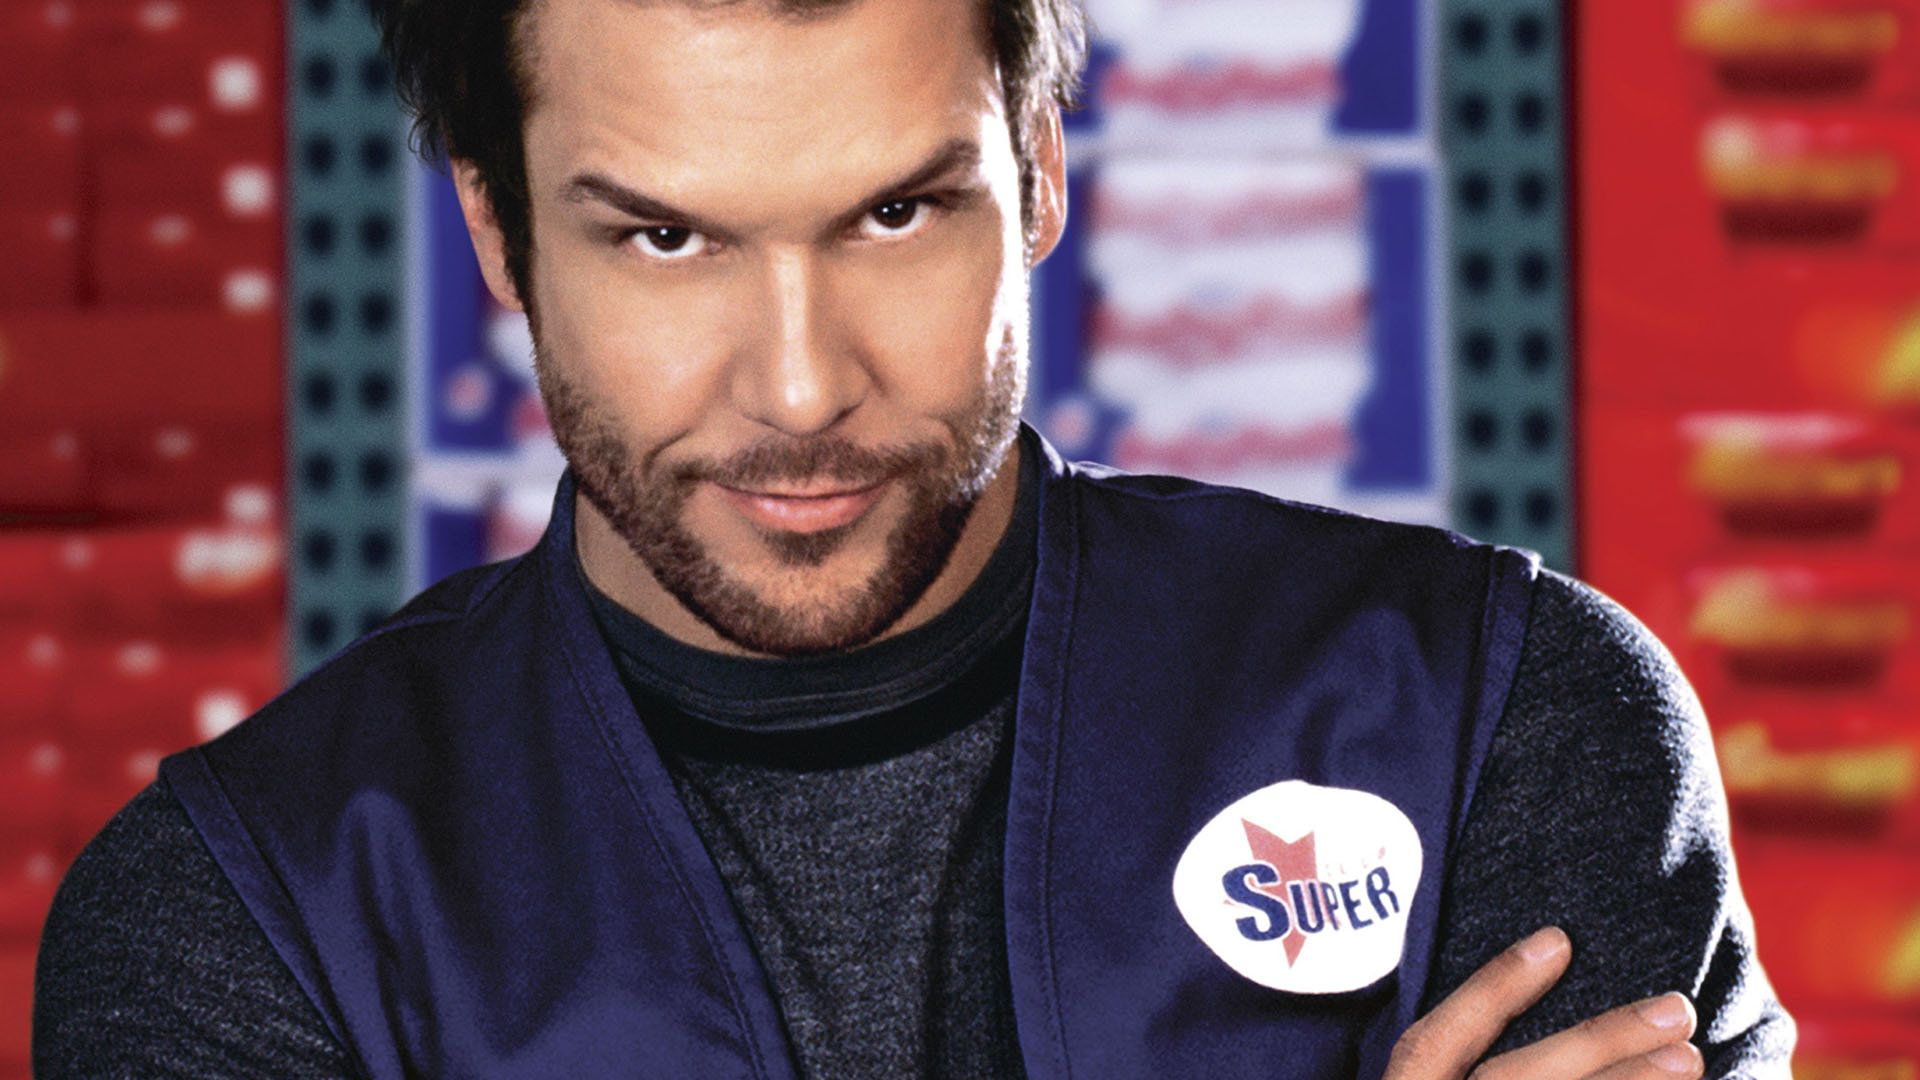 Dane Cook Wallpapers Dane Cook Backgrounds and Images 1920x1080